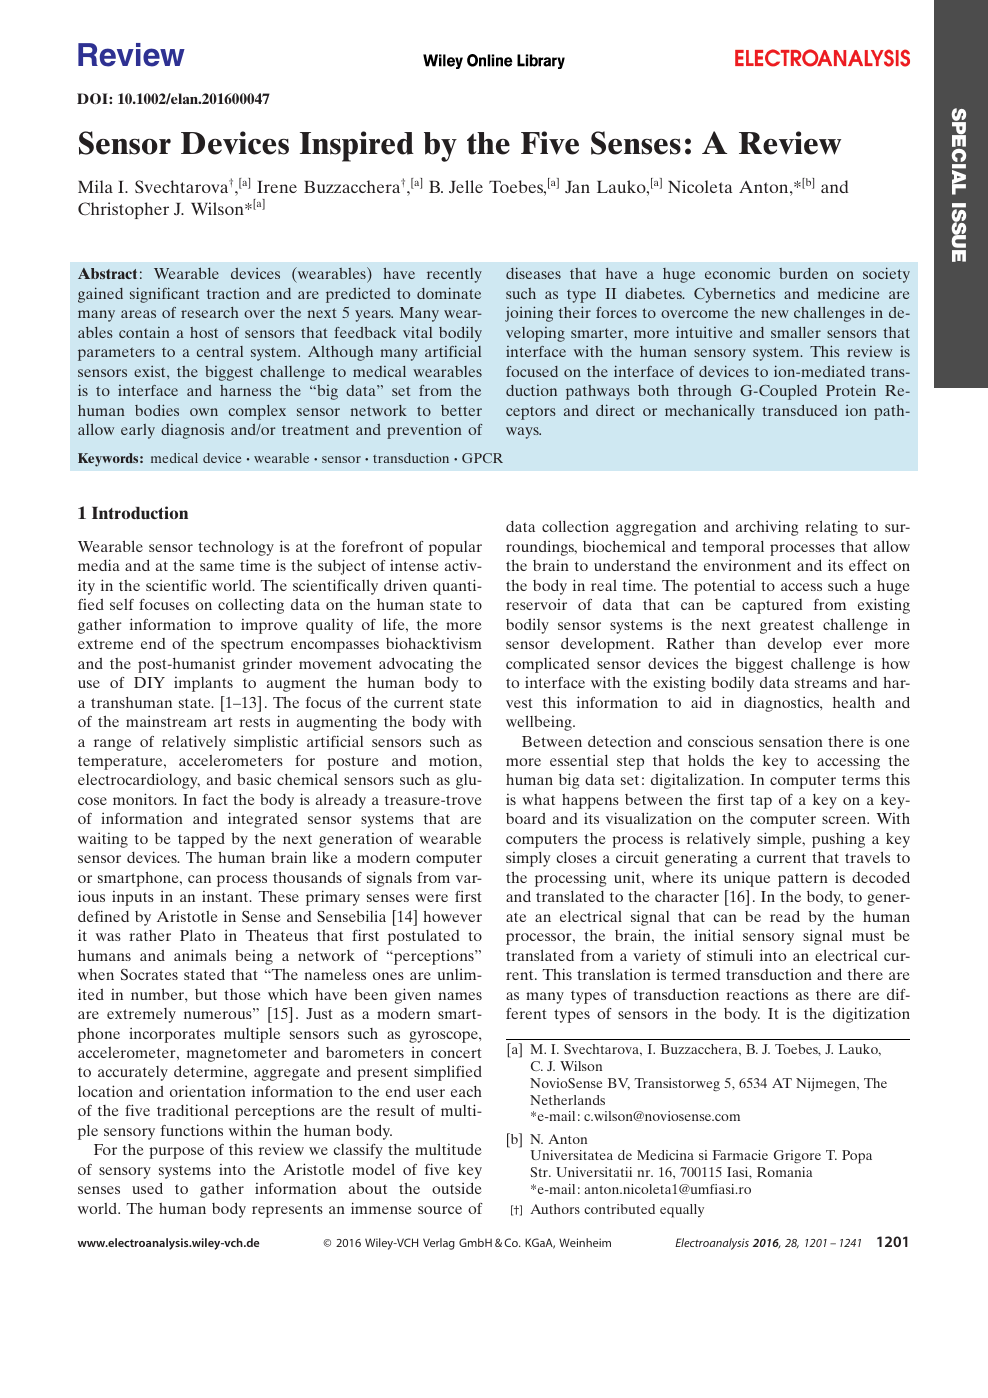 Sensor Devices Inspired by the Five Senses: A Review – topic